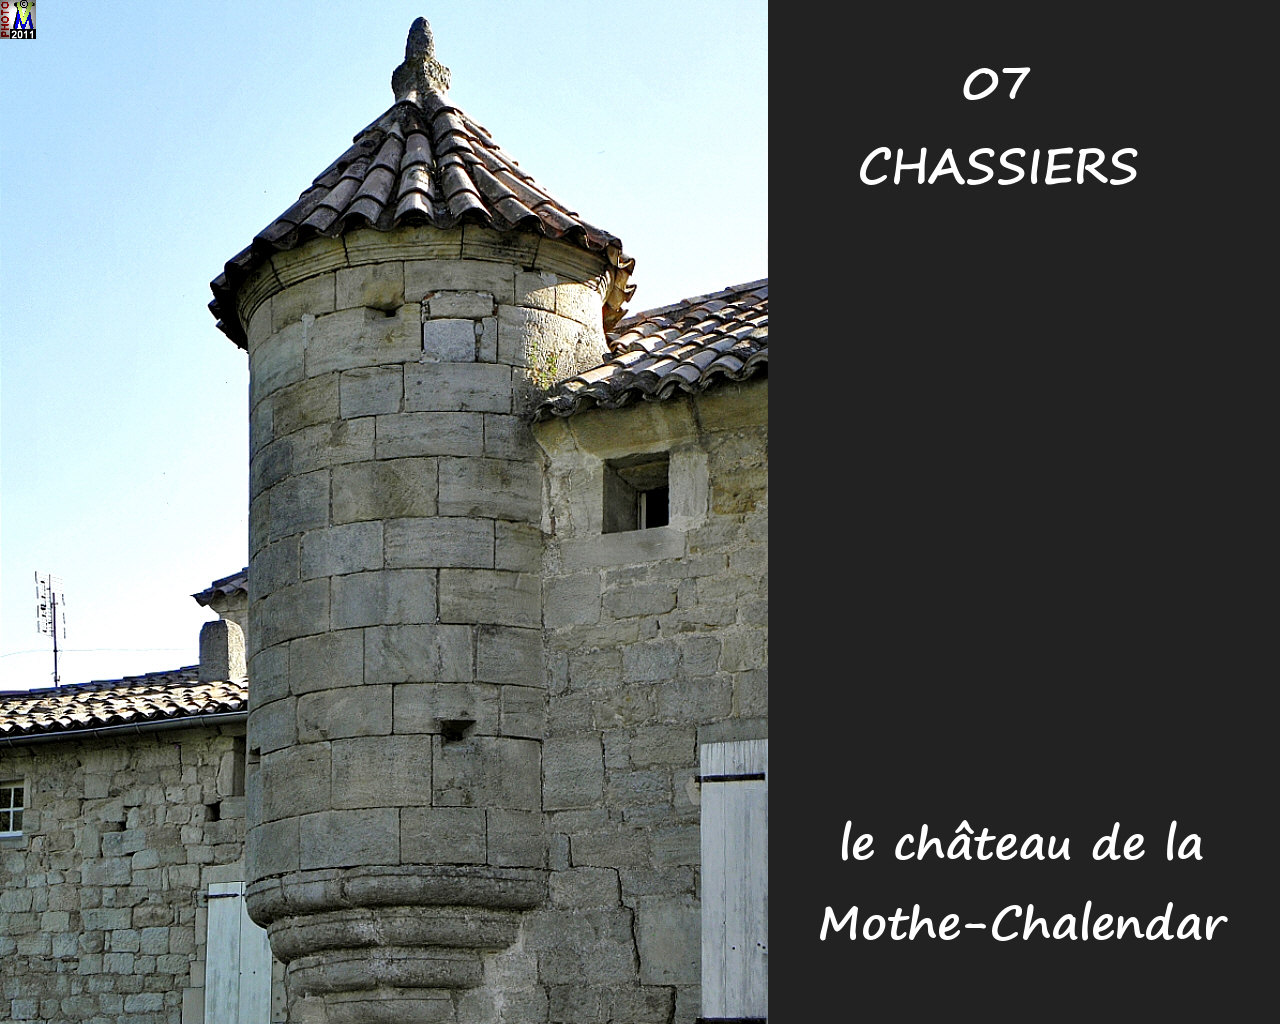 07CHASSIERS_chateauMC_106.jpg